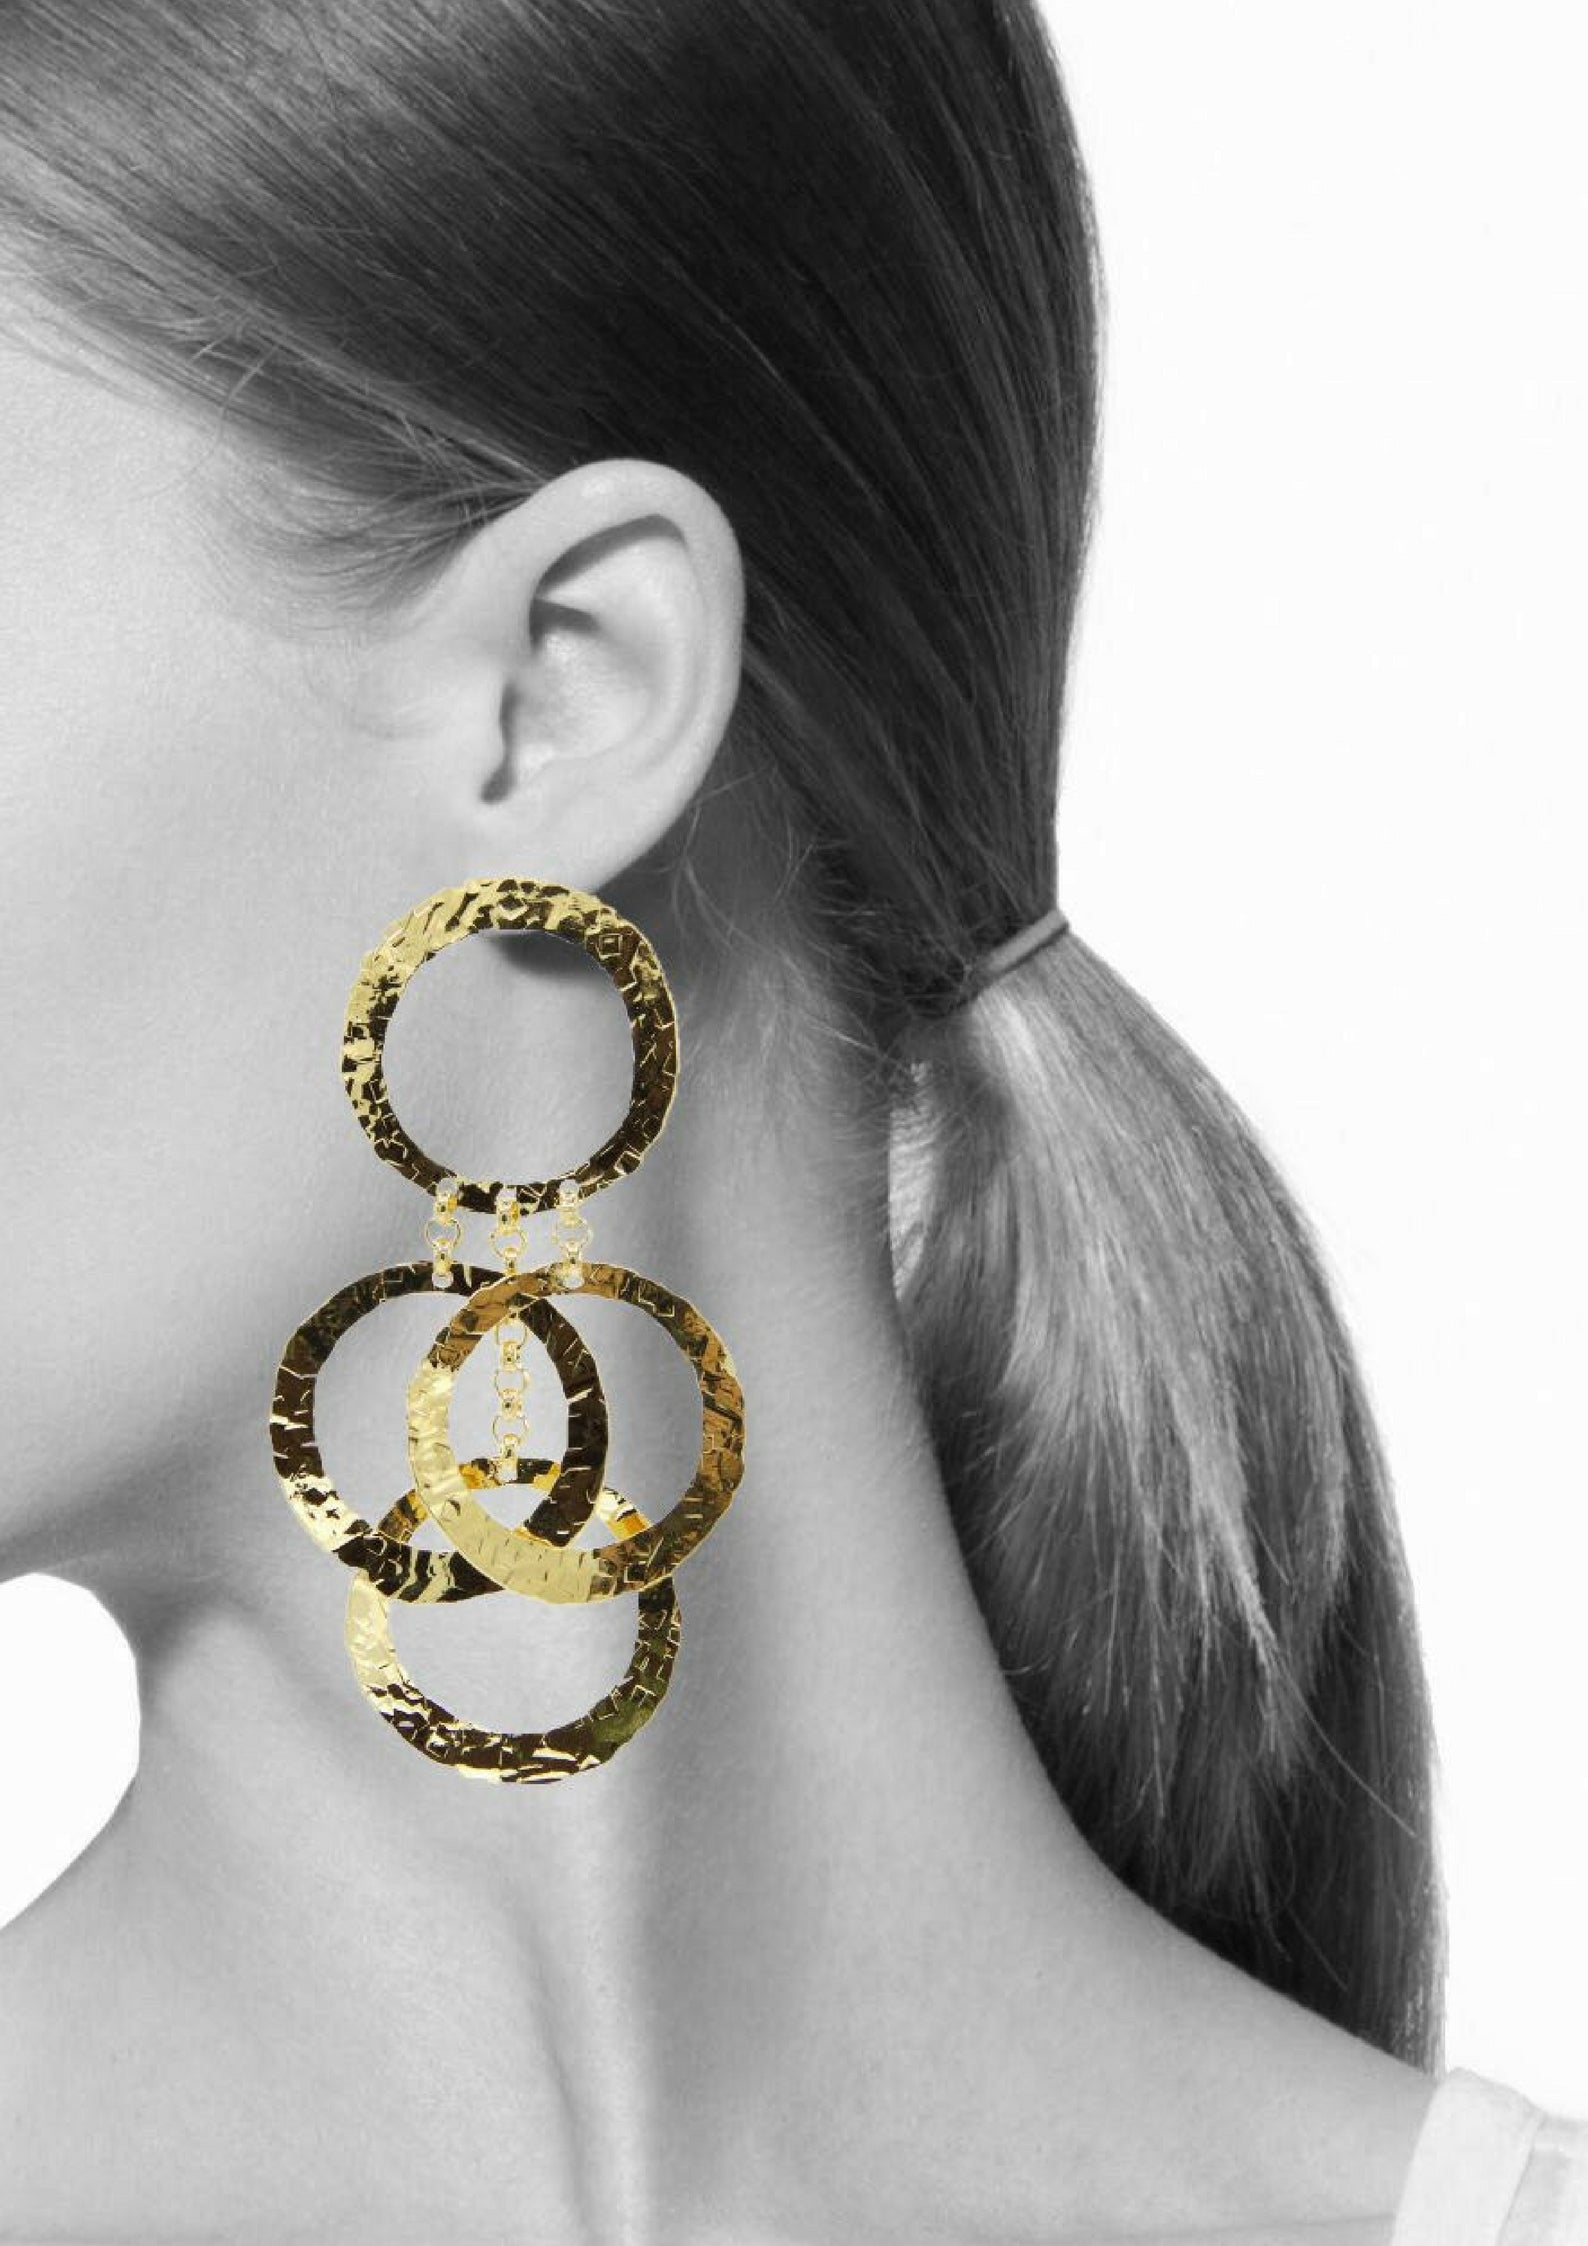 Ring Leader Earrings-Earrings-JAREDJAMIN Jewelry Online-Gold-JARED JAMIN